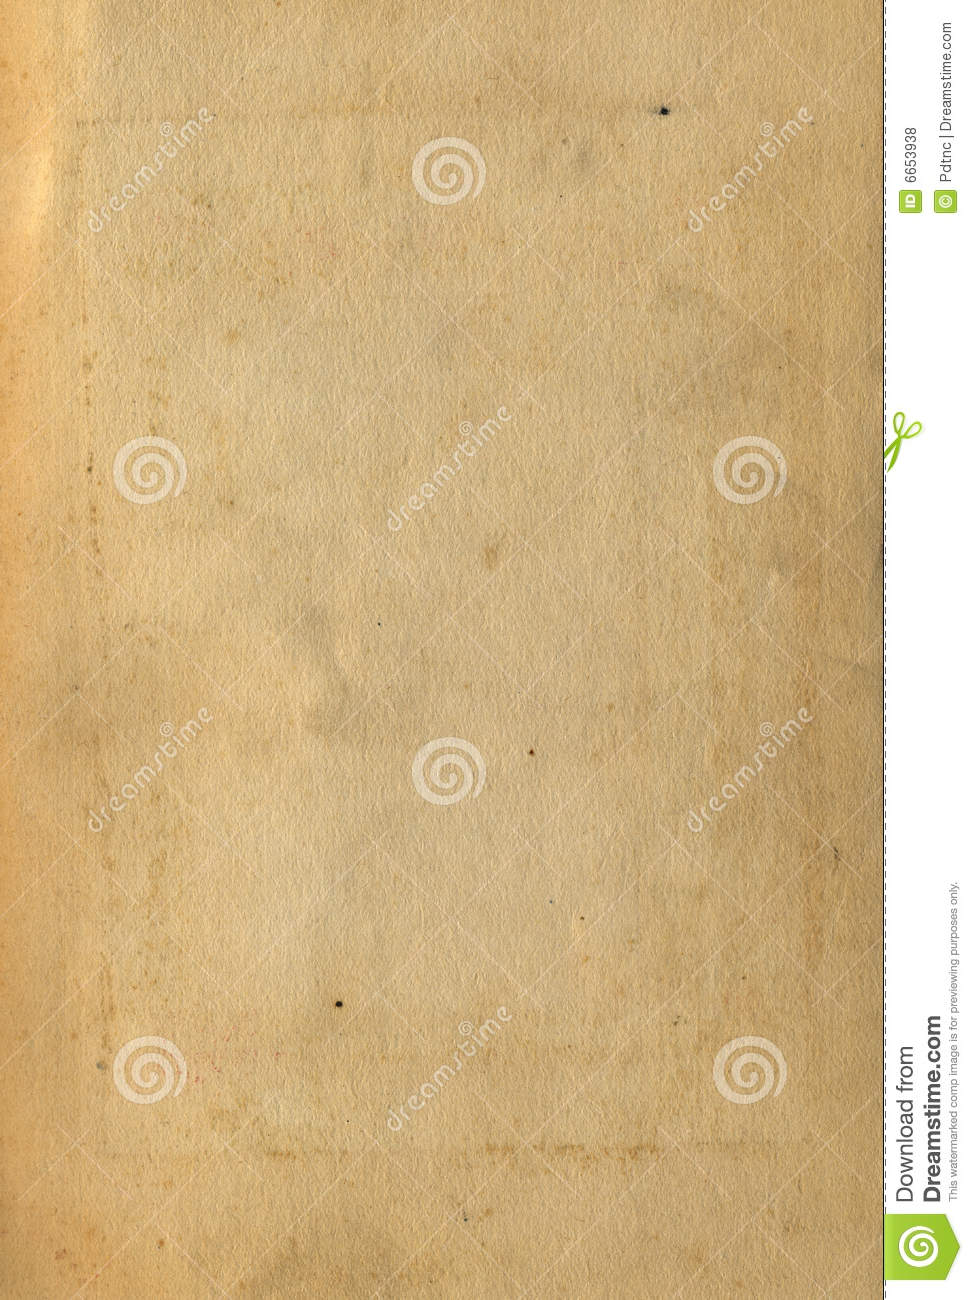 Book Cover Texture Ds Max : Old book cover paper pages textures stock photo image of